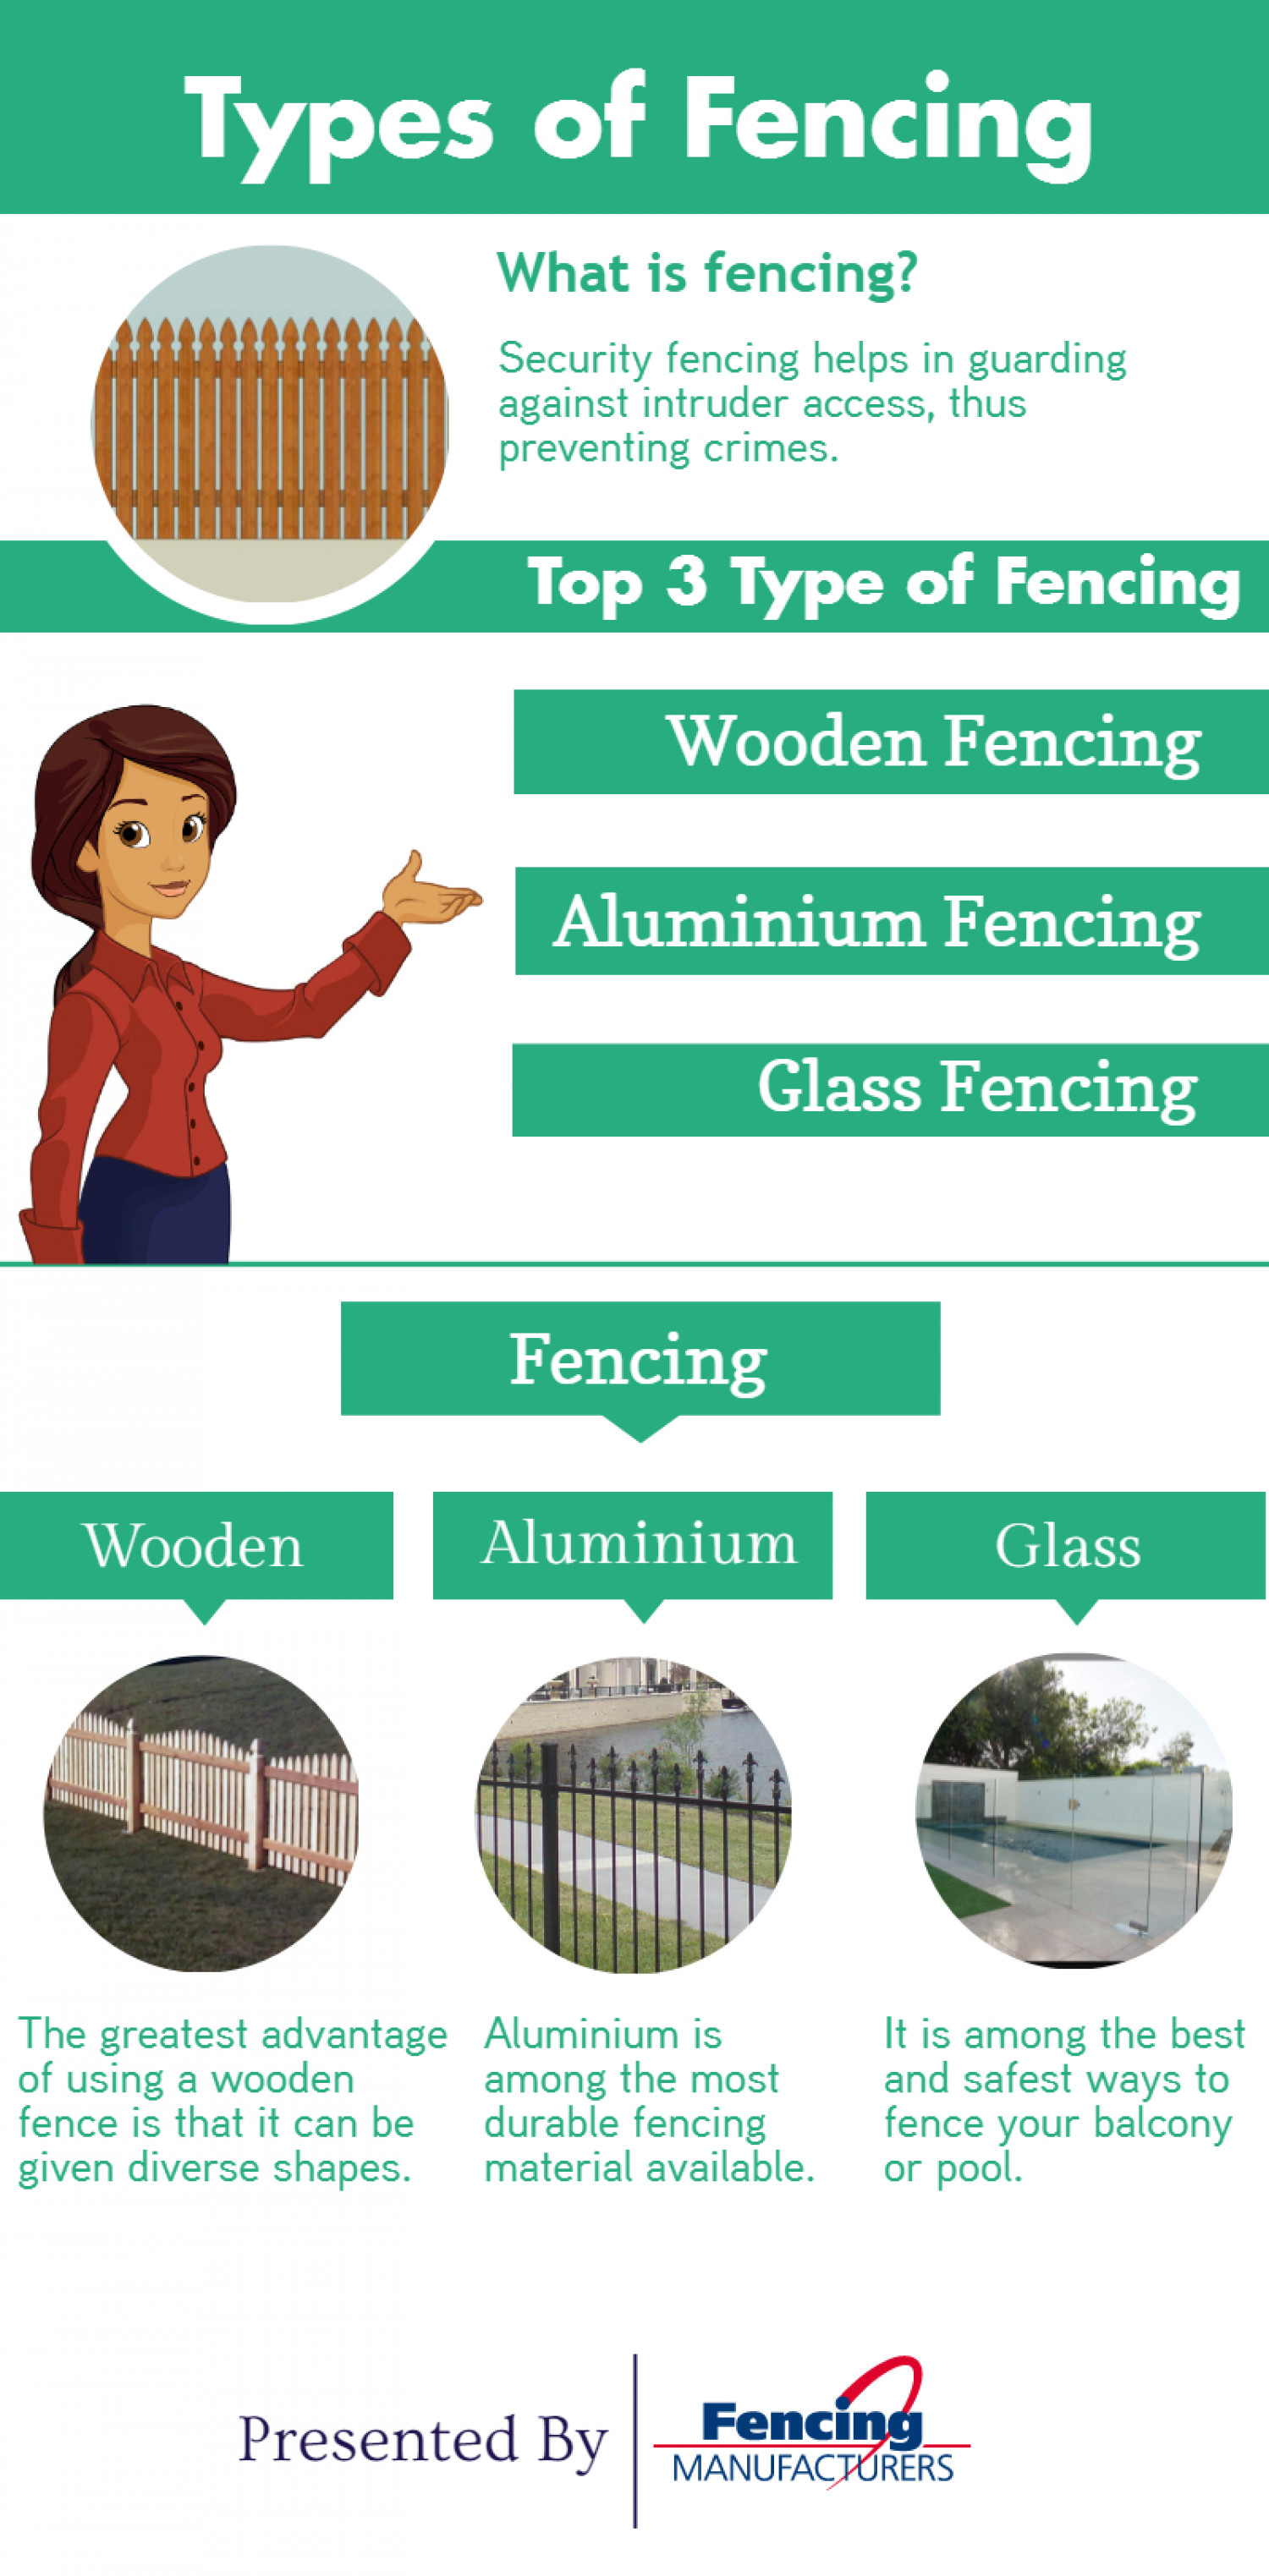 Types of Fencing Infographic